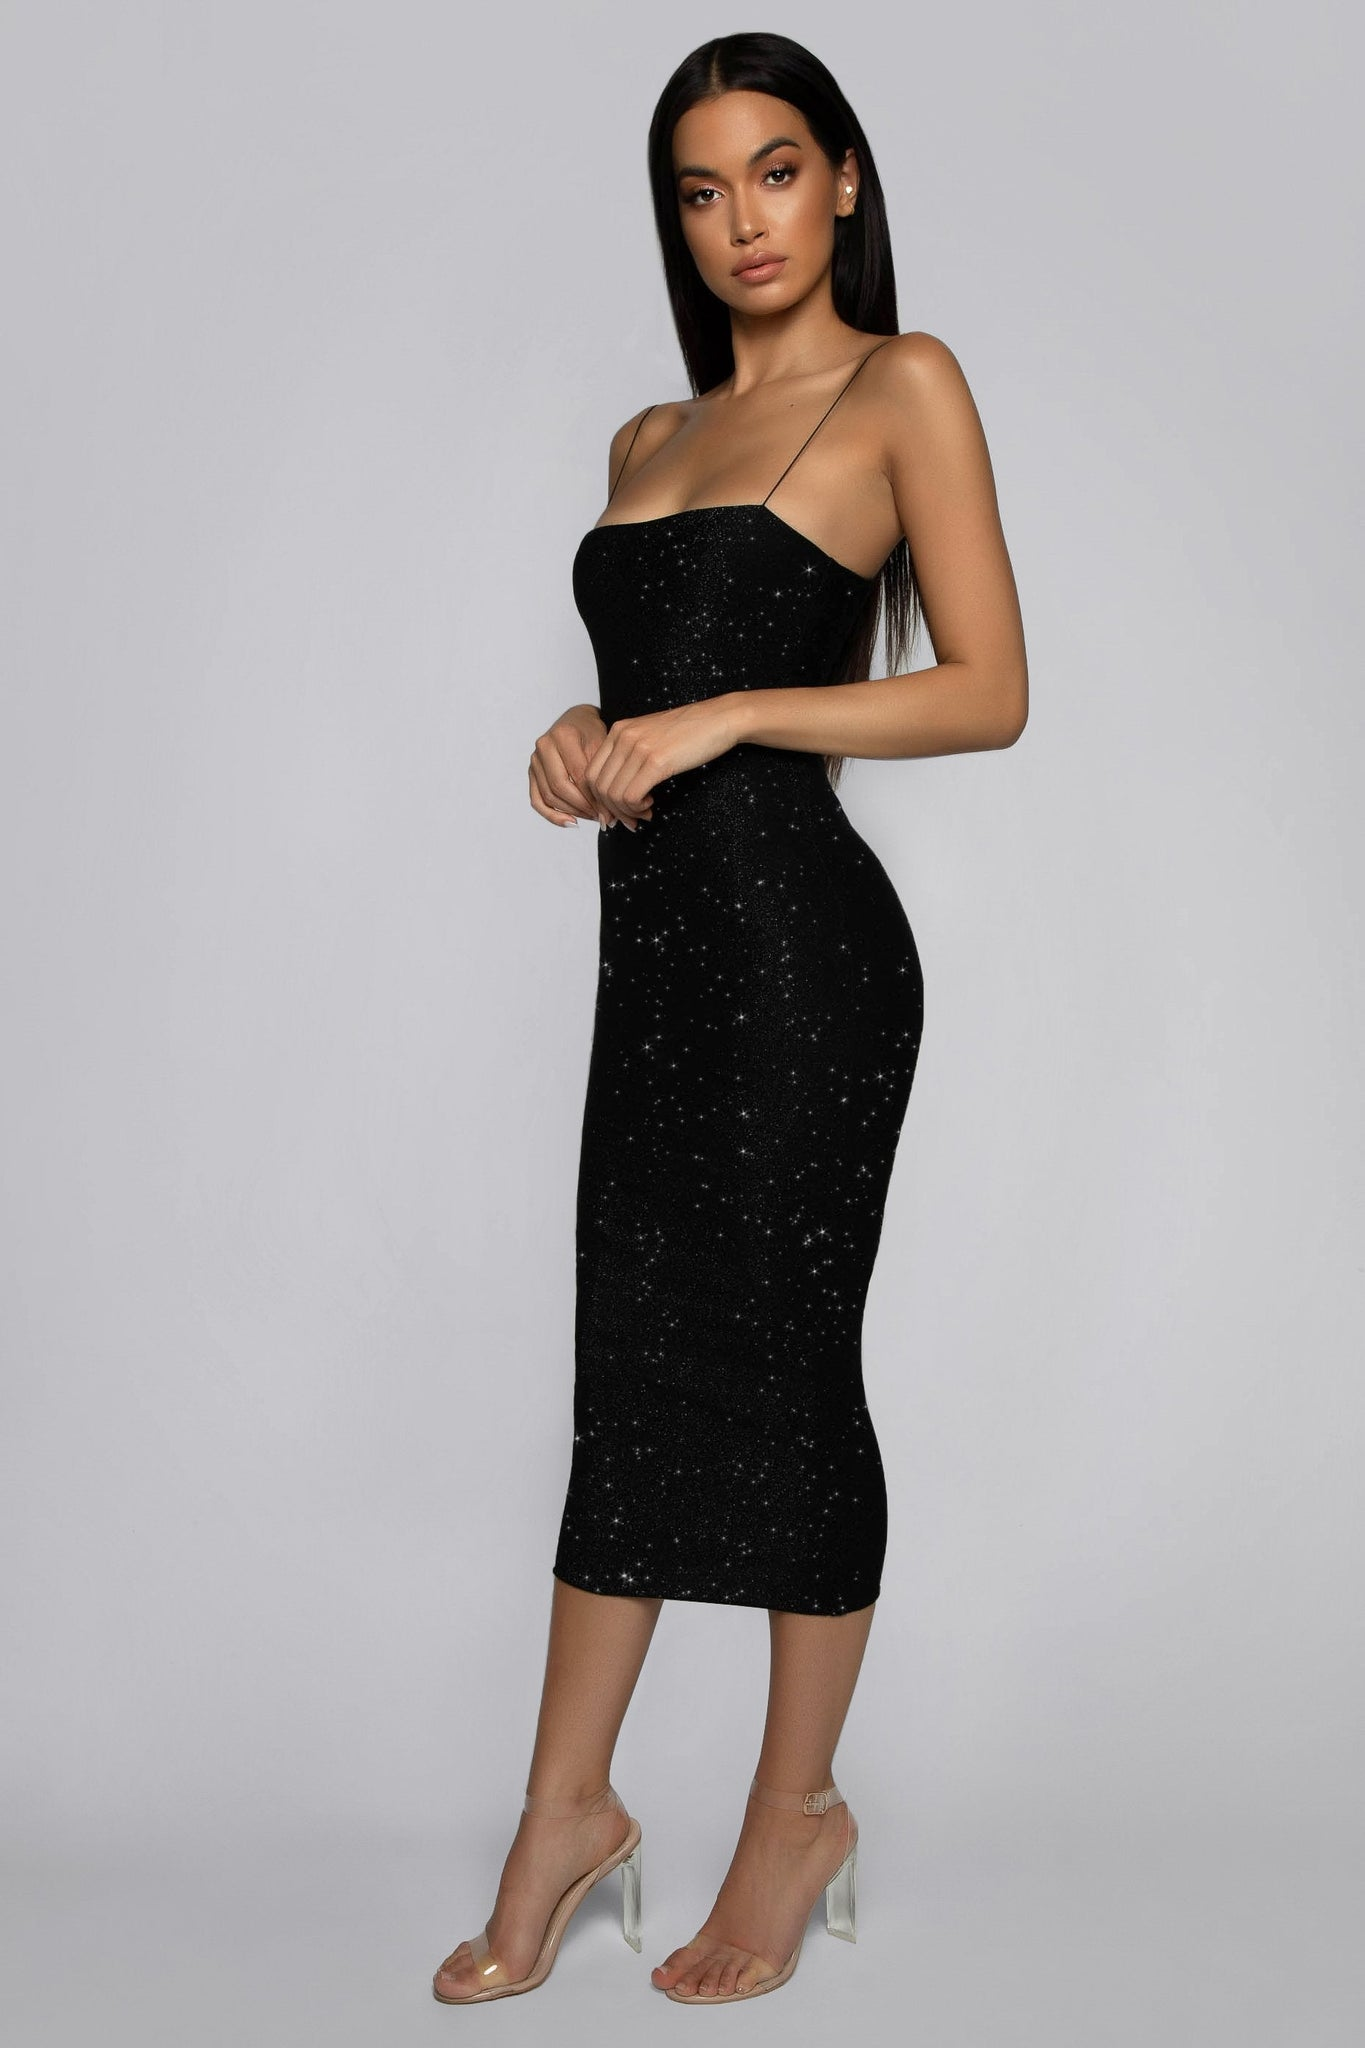 Jalia Thin Strap Shimmer Dress - Black - MESHKI